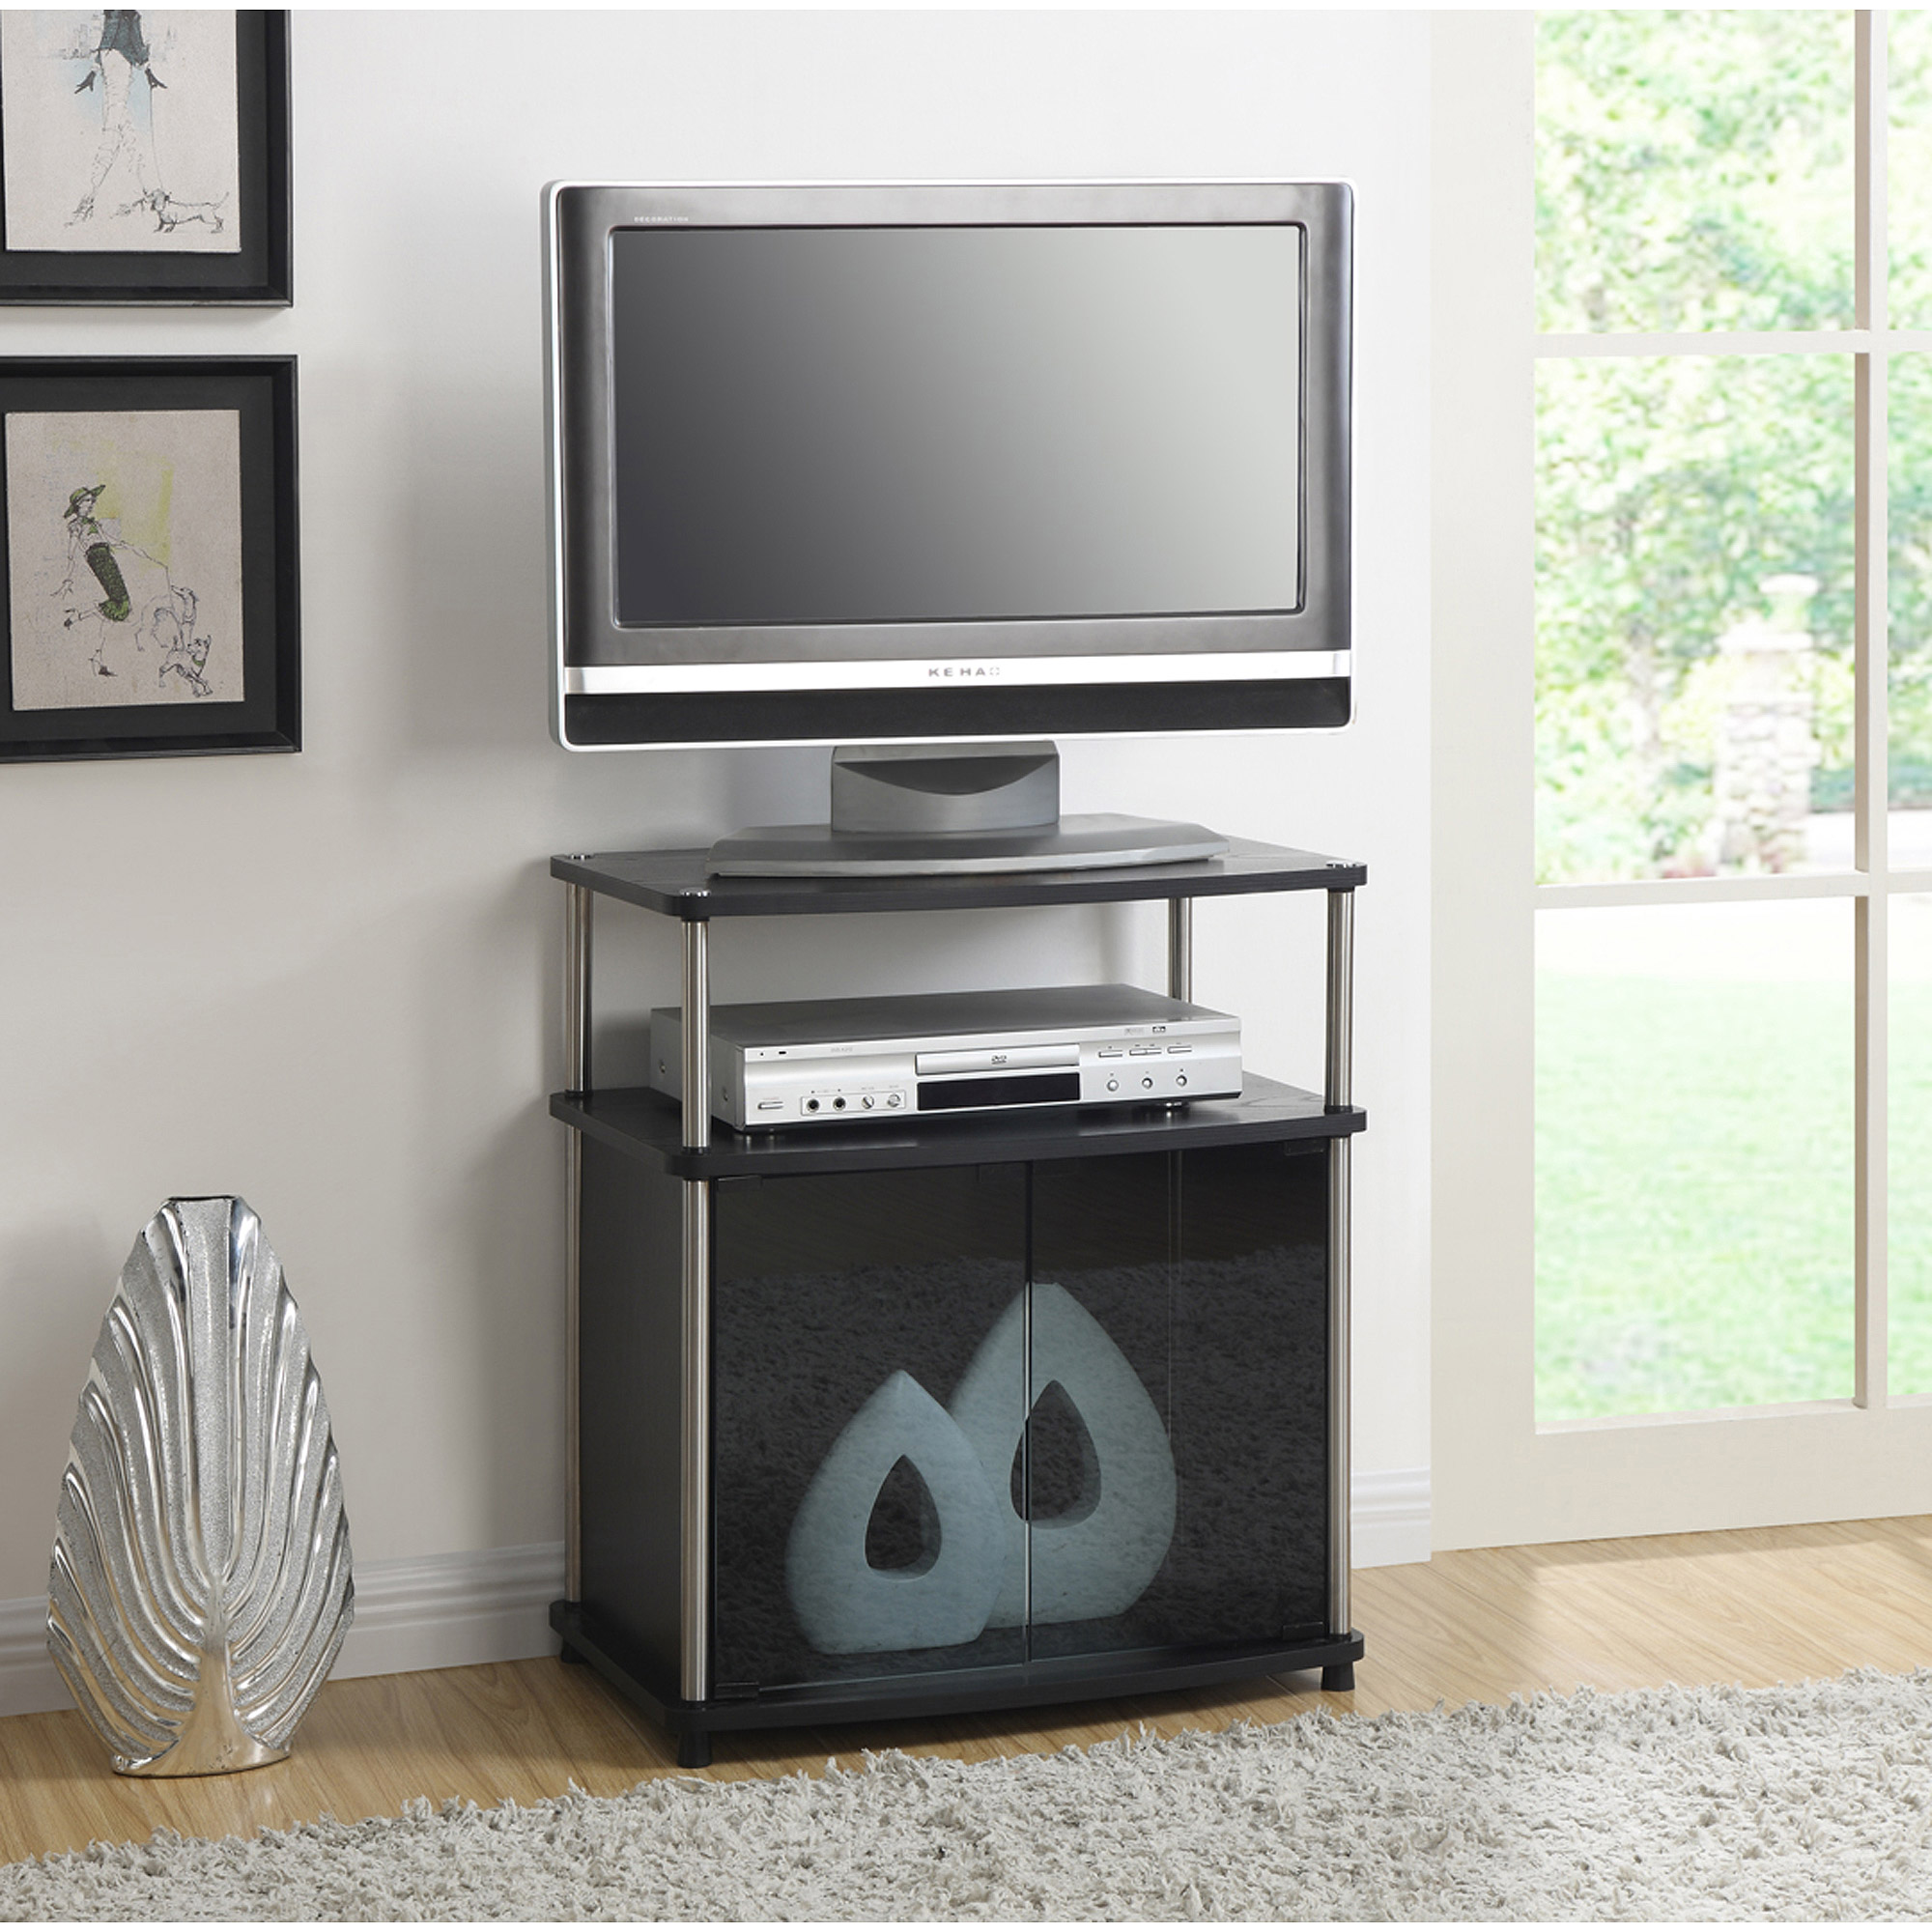 "Convenience Concepts Designs2Go TV Stand with Cabinet for TVs up to 25"", Multiple Colors"